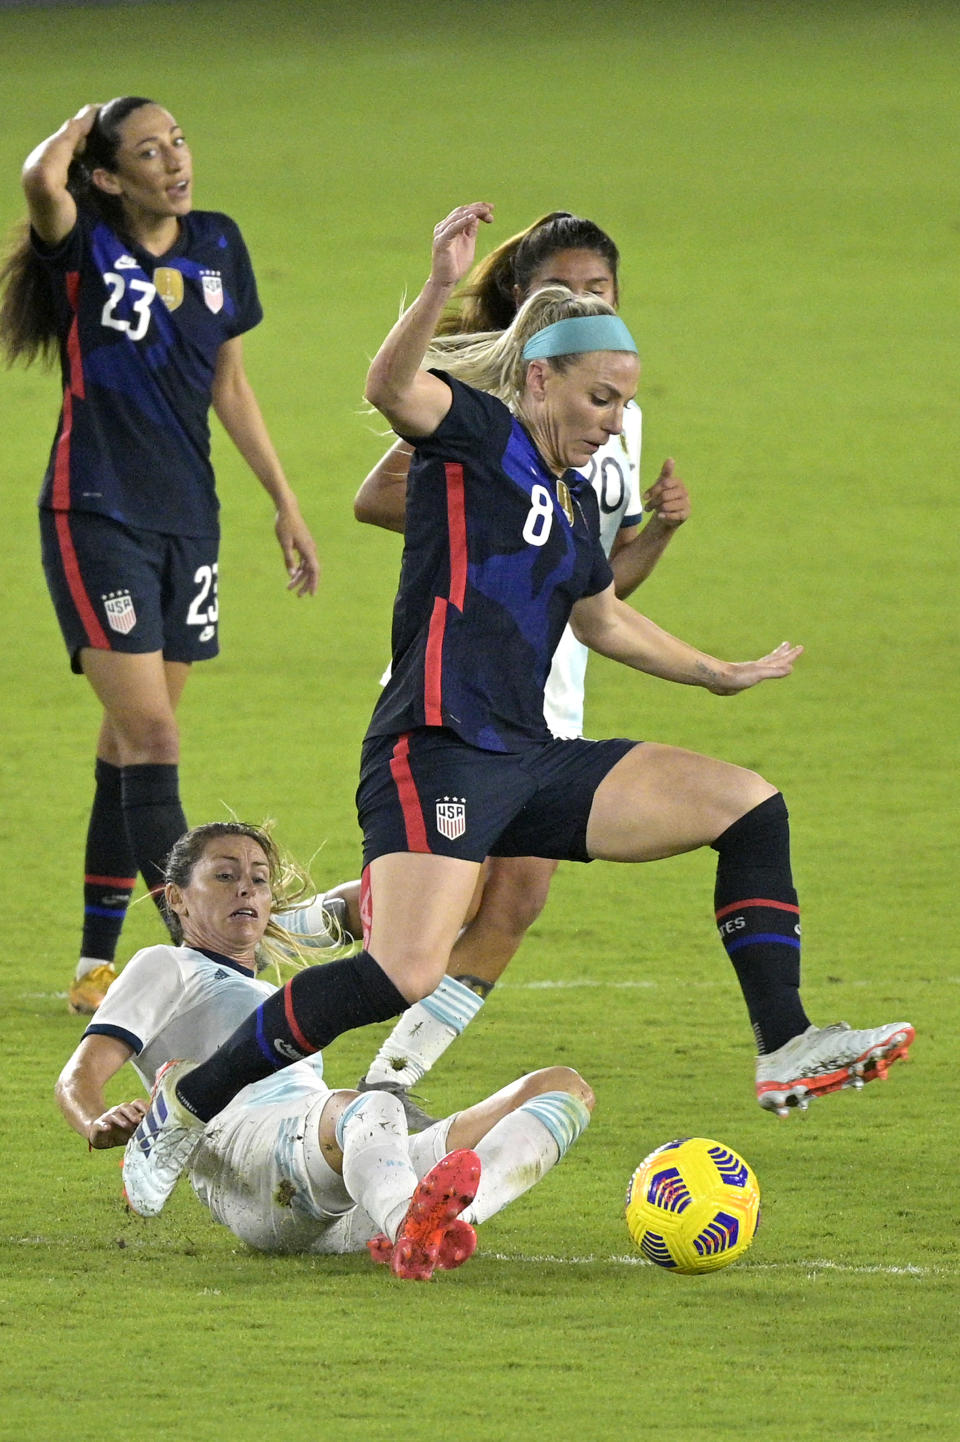 United States midfielder Julie Ertz (8) and Argentina midfielder Clarisa Huber, below, compete for a ball during the first half of a SheBelieves Cup women's soccer match, Wednesday, Feb. 24, 2021, in Orlando, Fla. (AP Photo/Phelan M. Ebenhack)